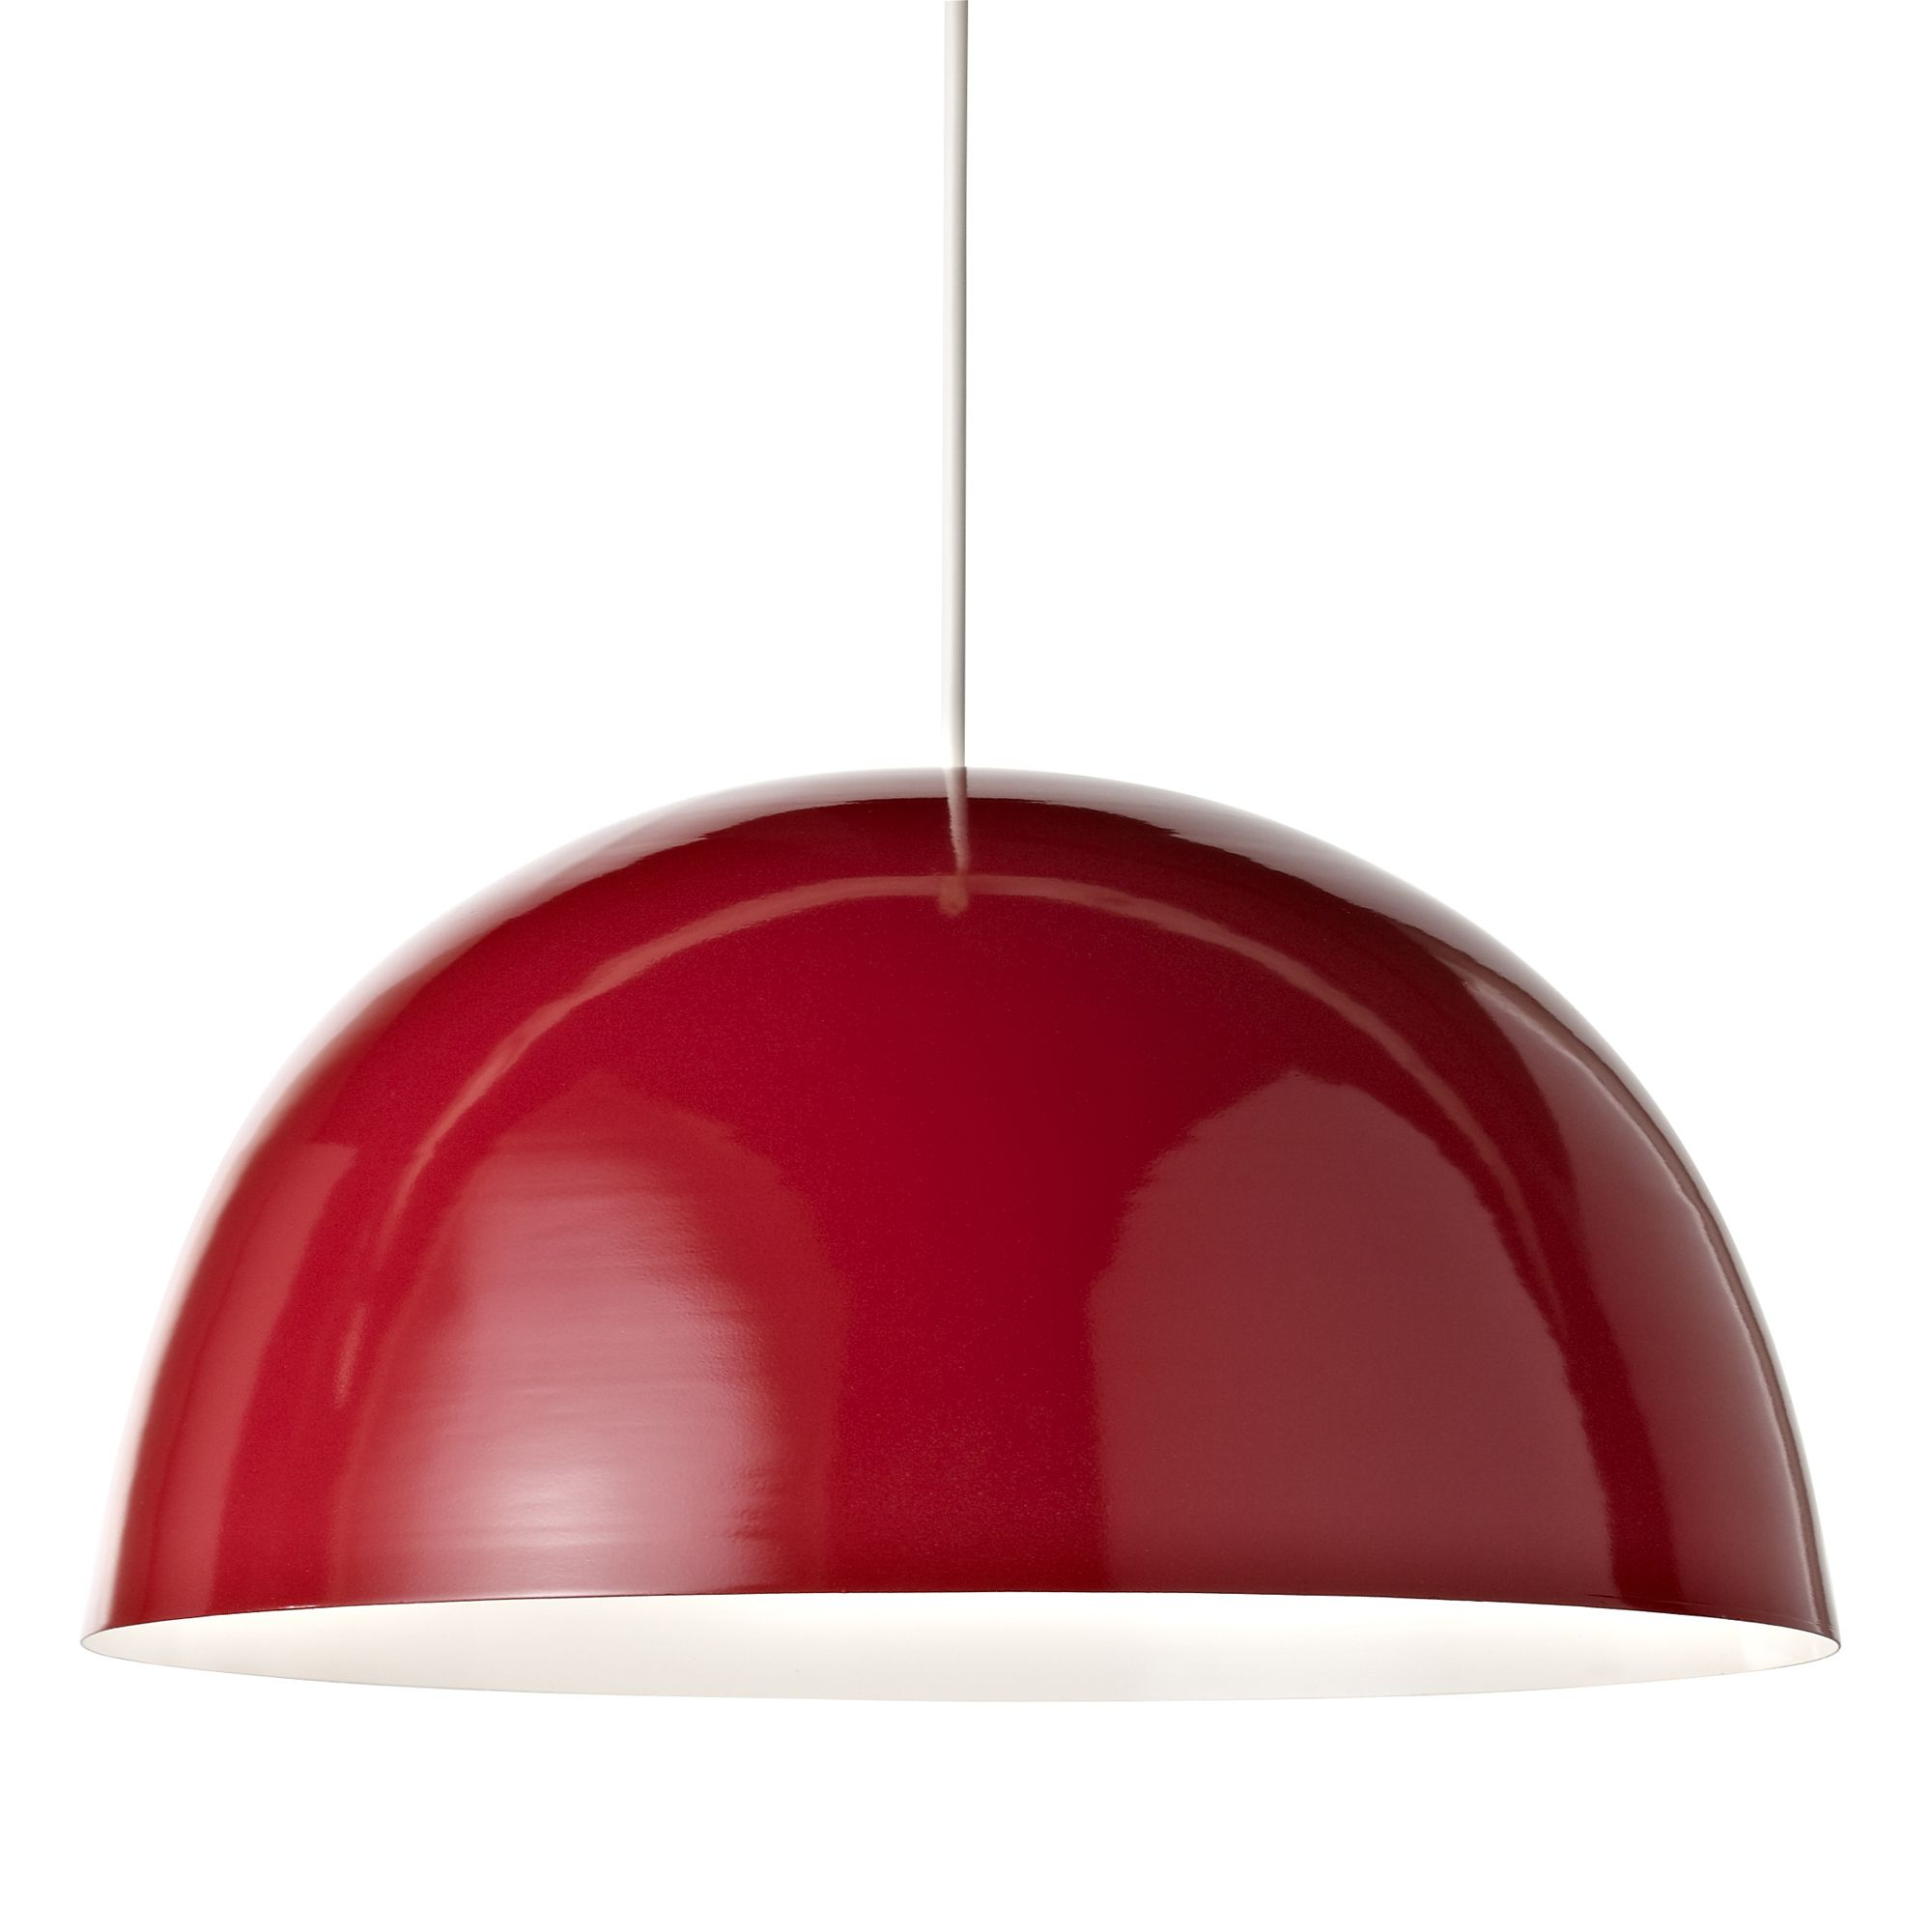 Colours cupola red light shade d45cm departments diy at bq aloadofball Image collections